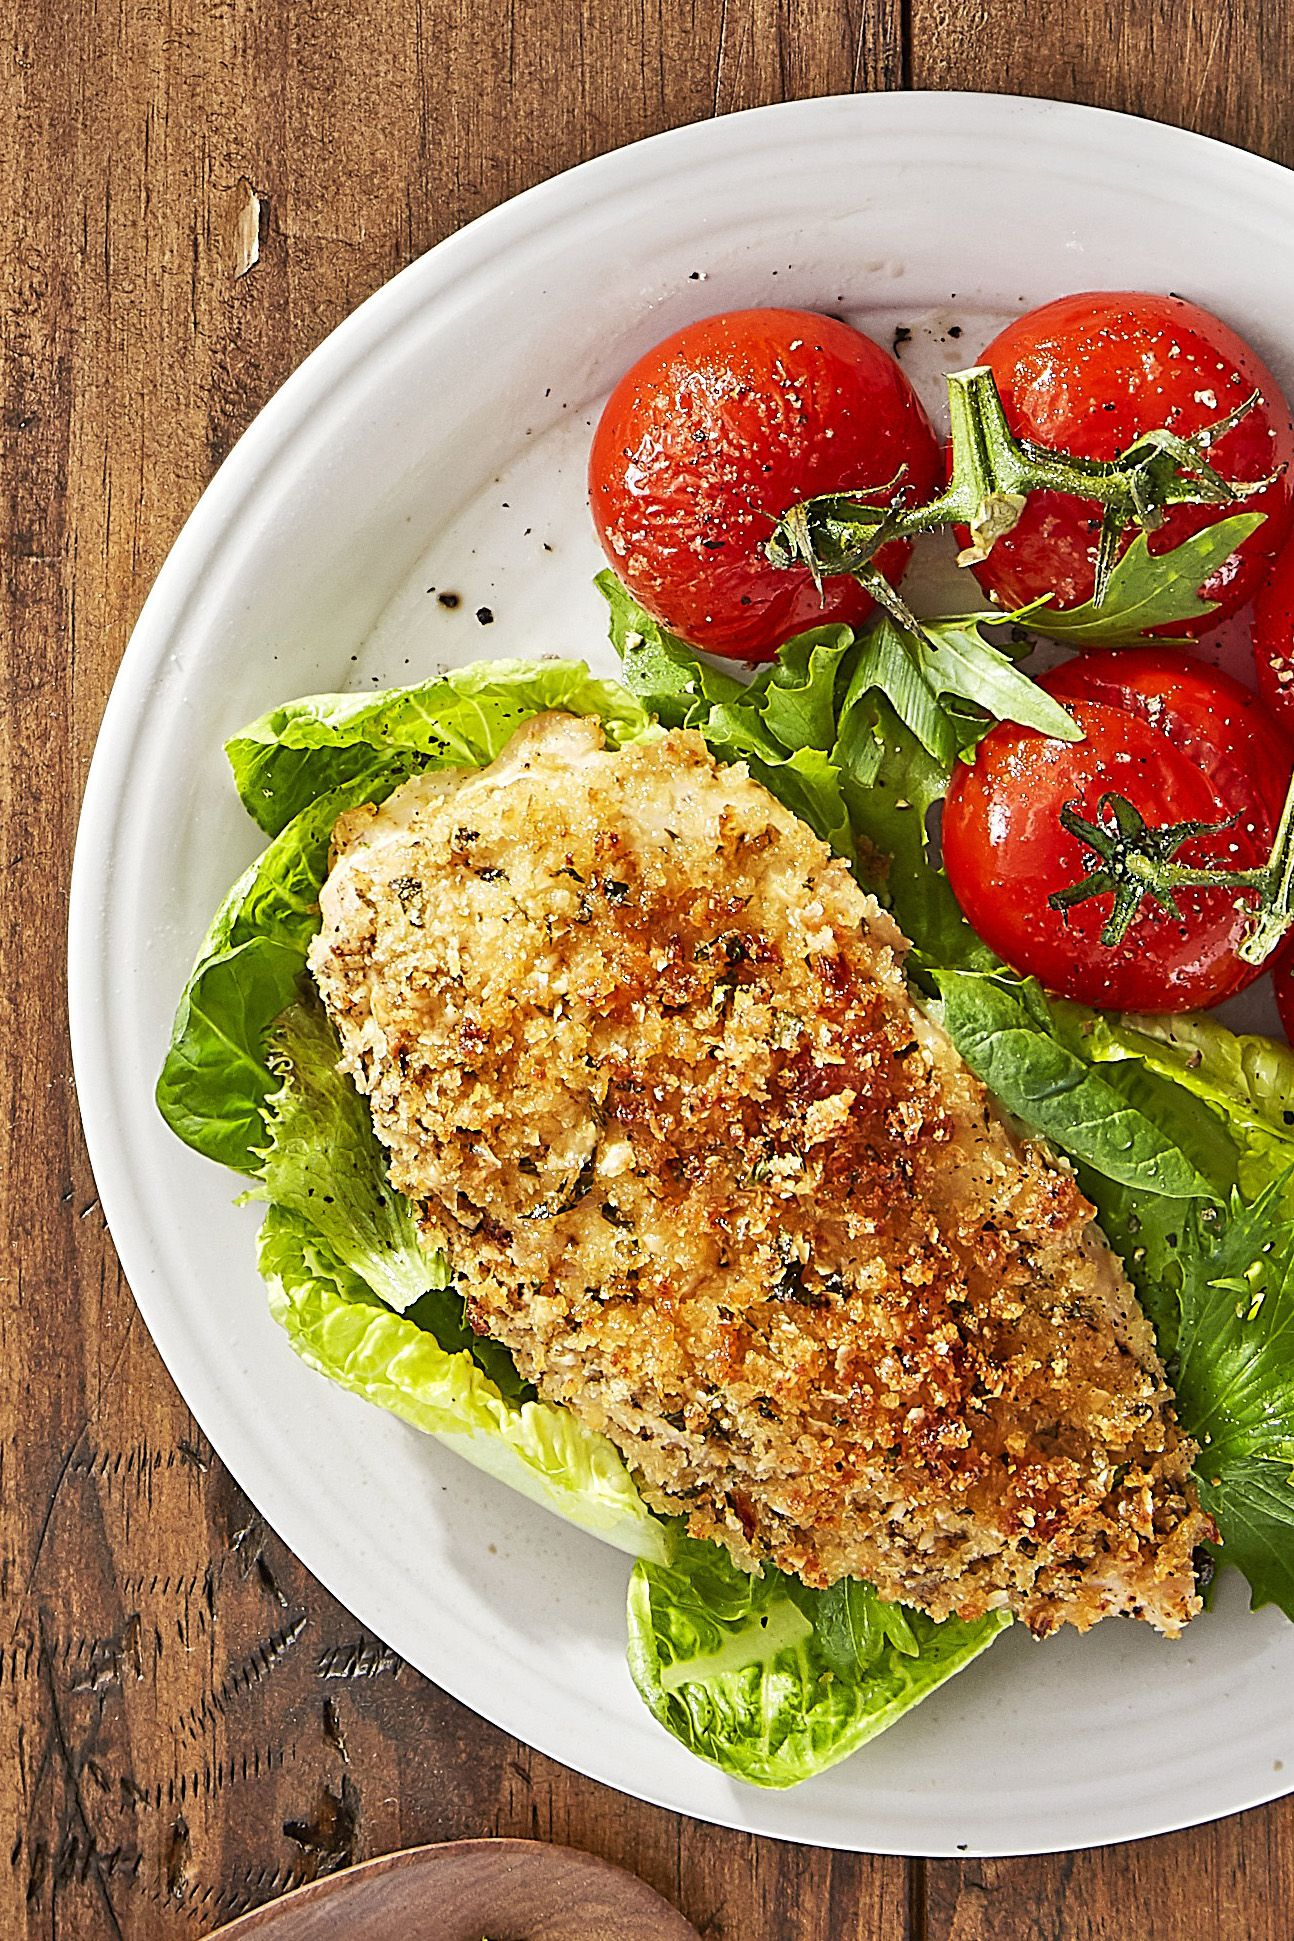 Best Roasted Parmesan Chicken And Tomatoes Recipe How To Make Roasted Parmesan Chicken And Tomatoes